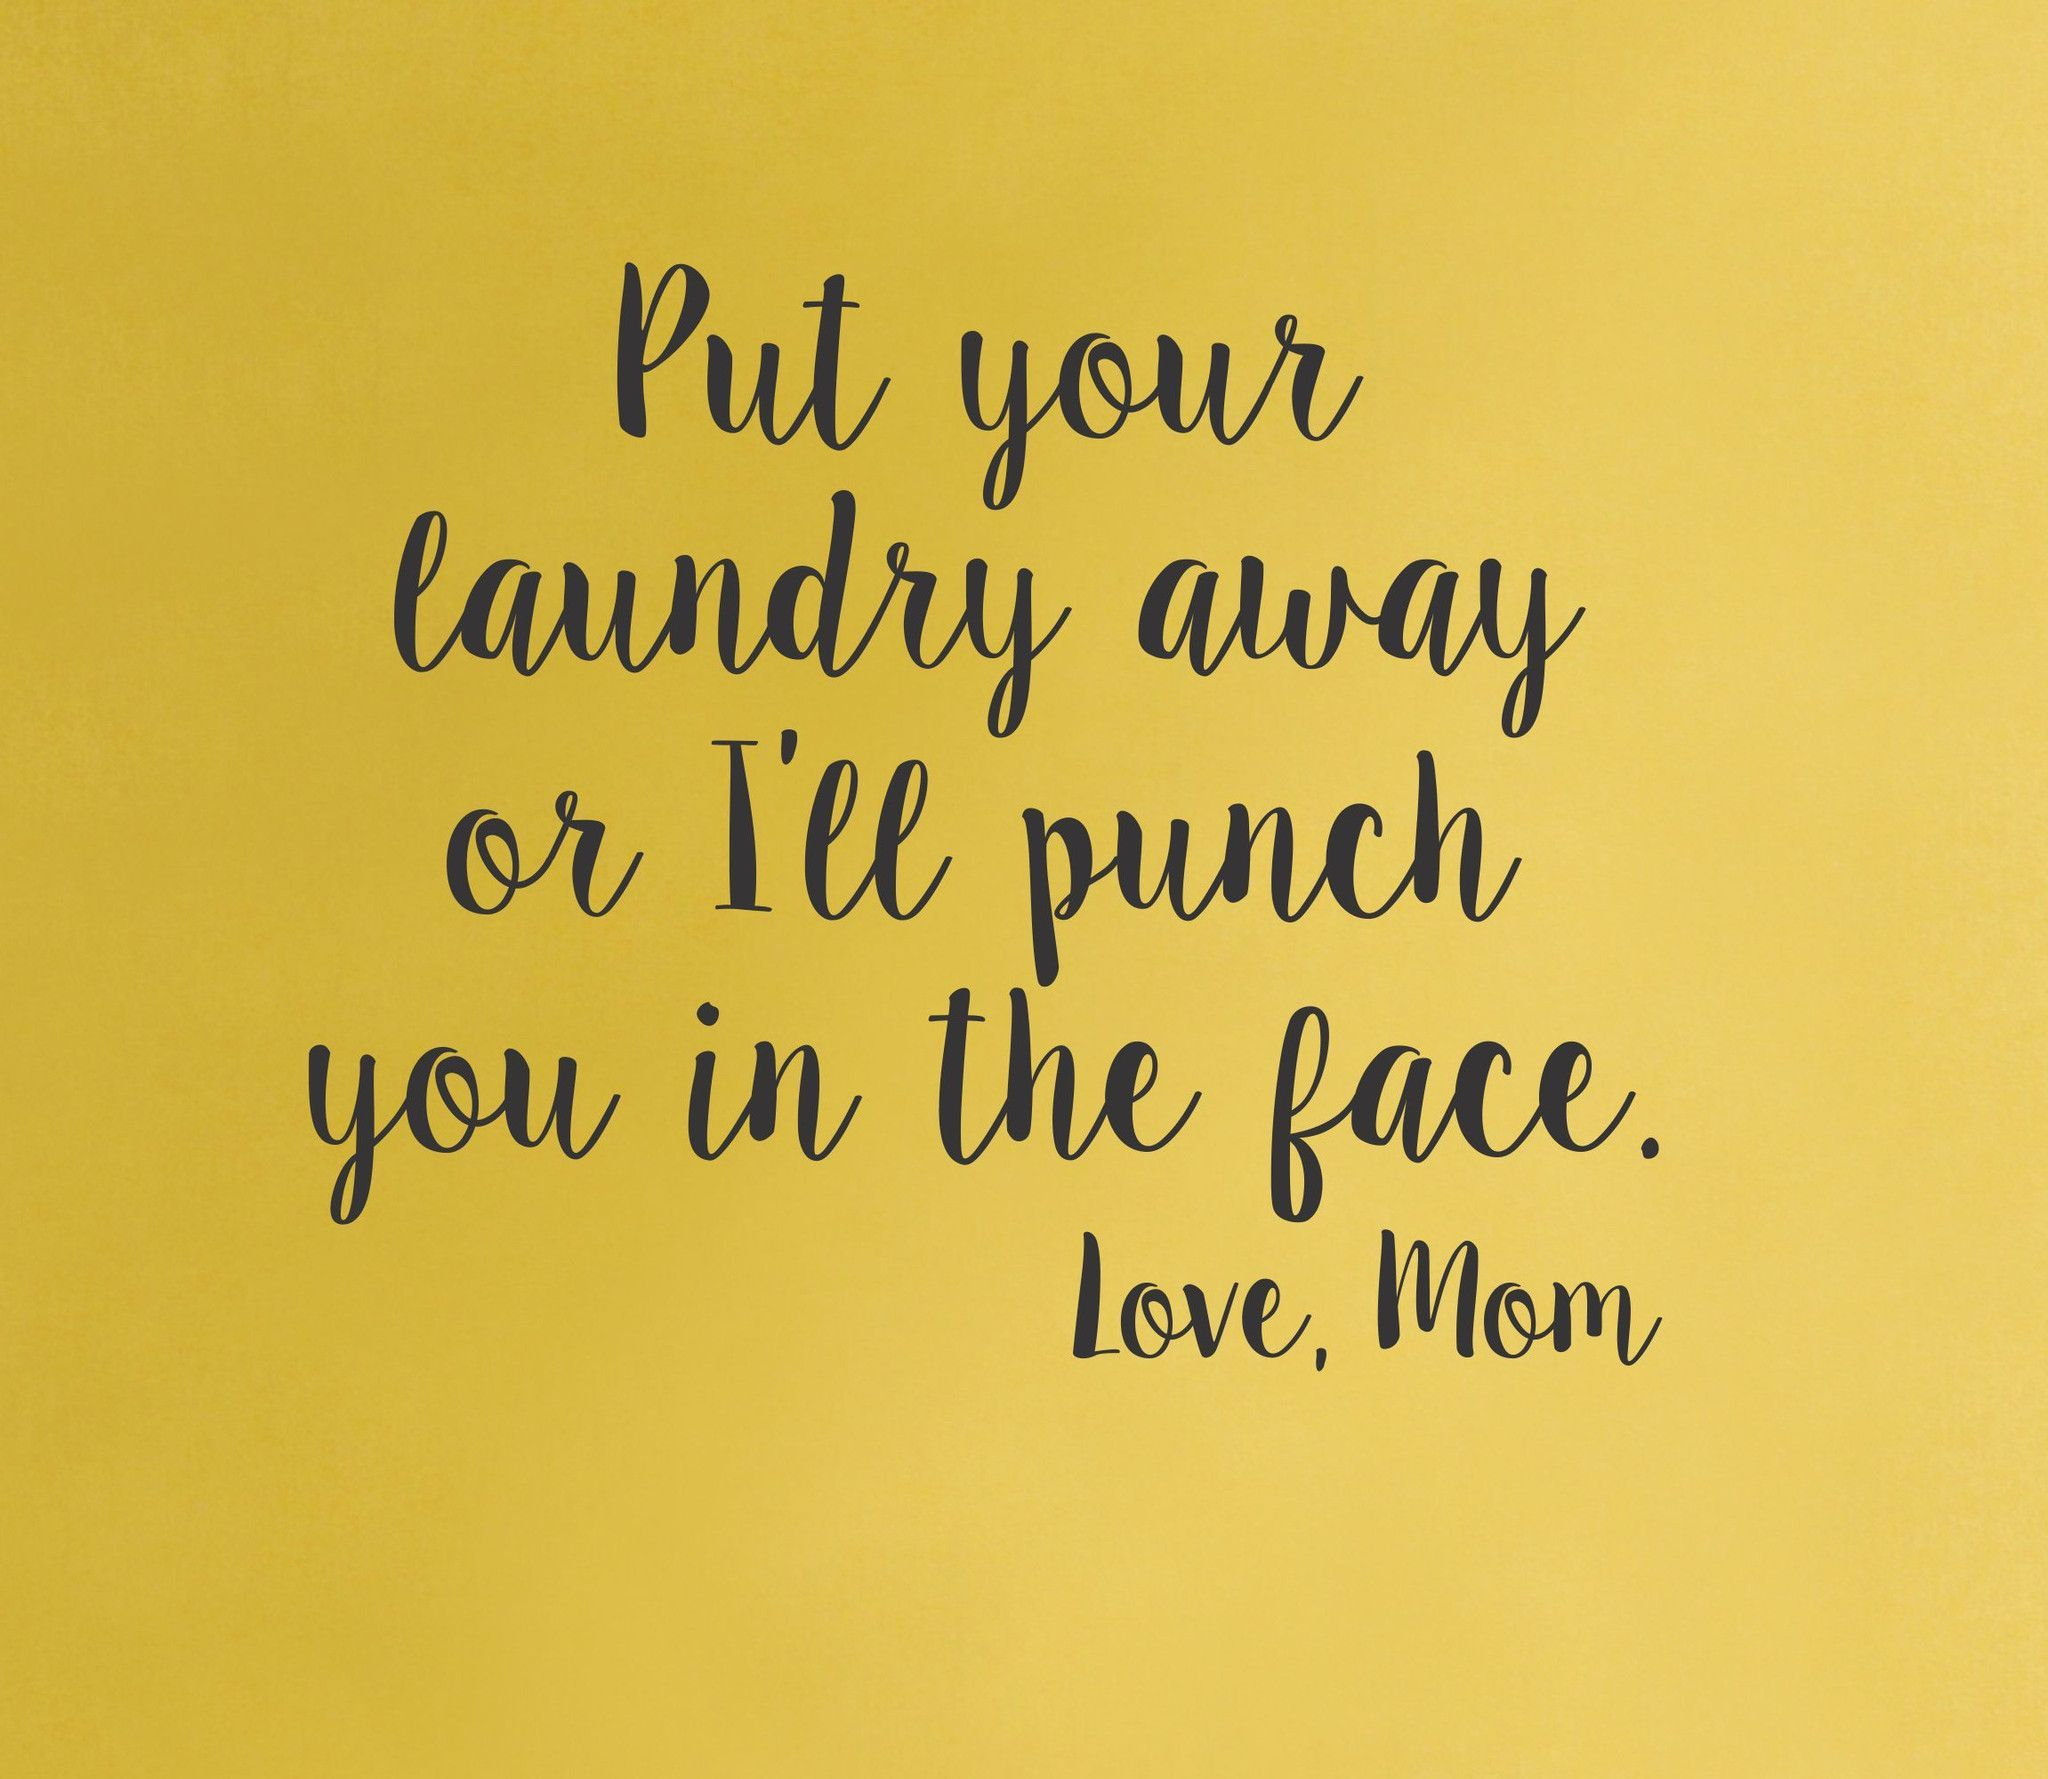 Laundry room wall decal - Love Mom - home decor quote funny lol ...